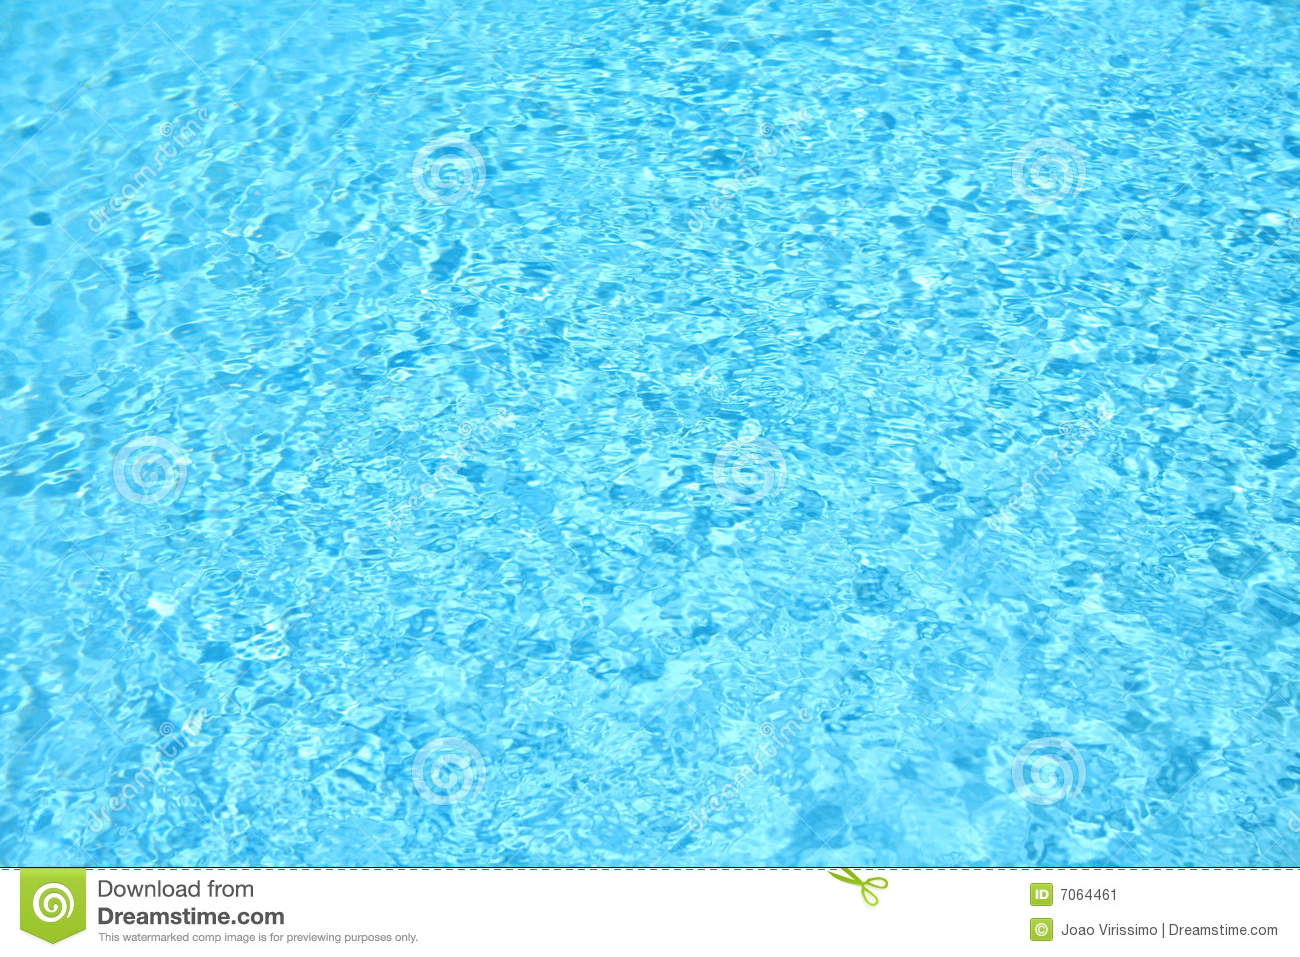 Swimming Pool Background blue water swimming pool background stock image - image: 7064461